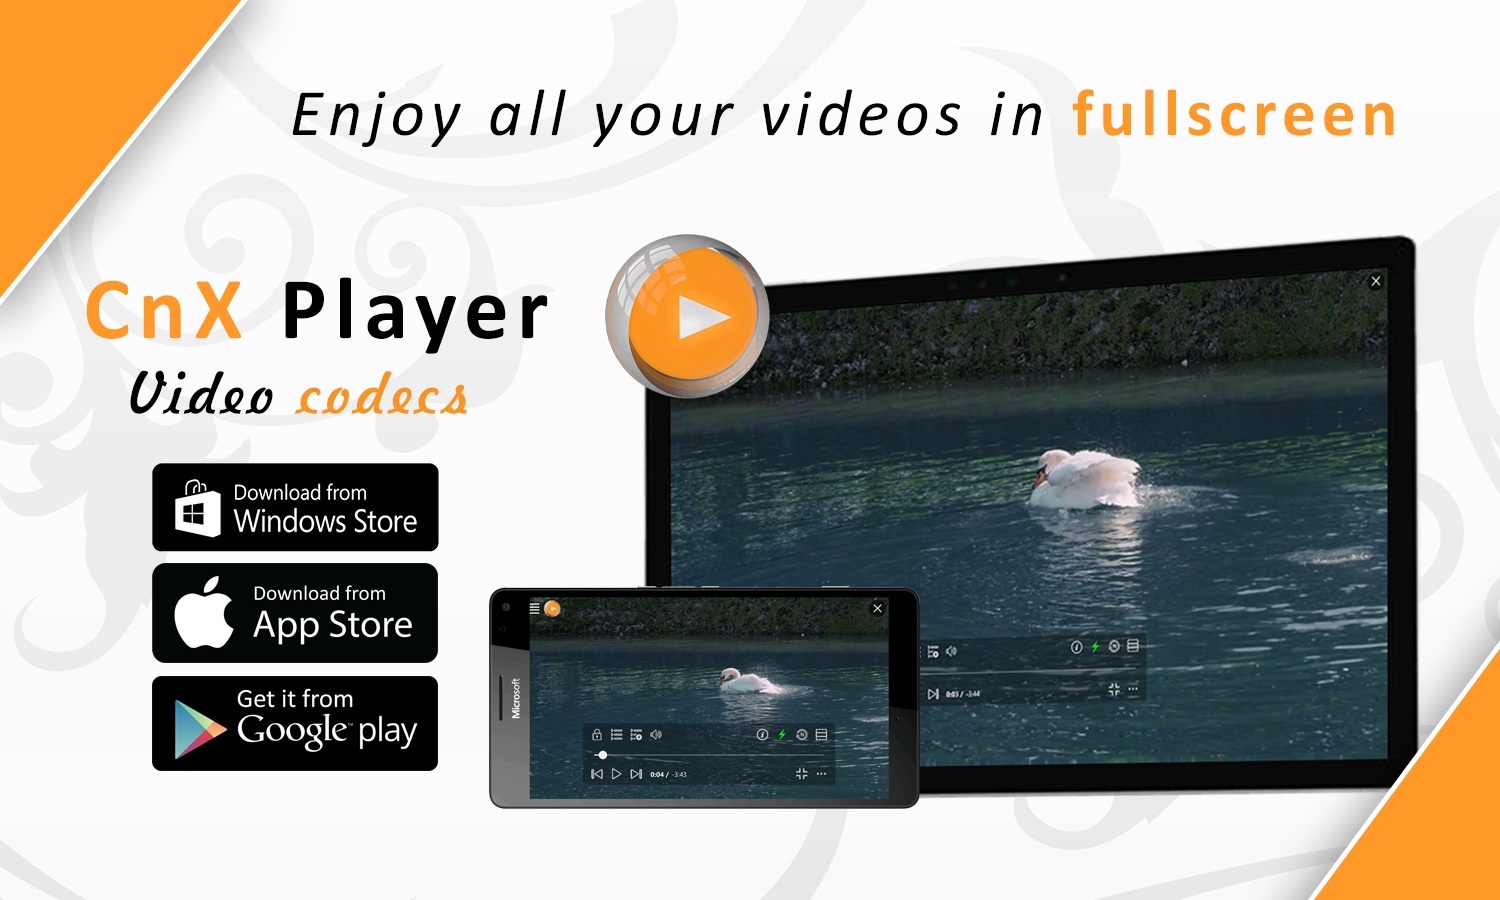 Pin by CnX Player on Windows 10 - CnX Player | Download